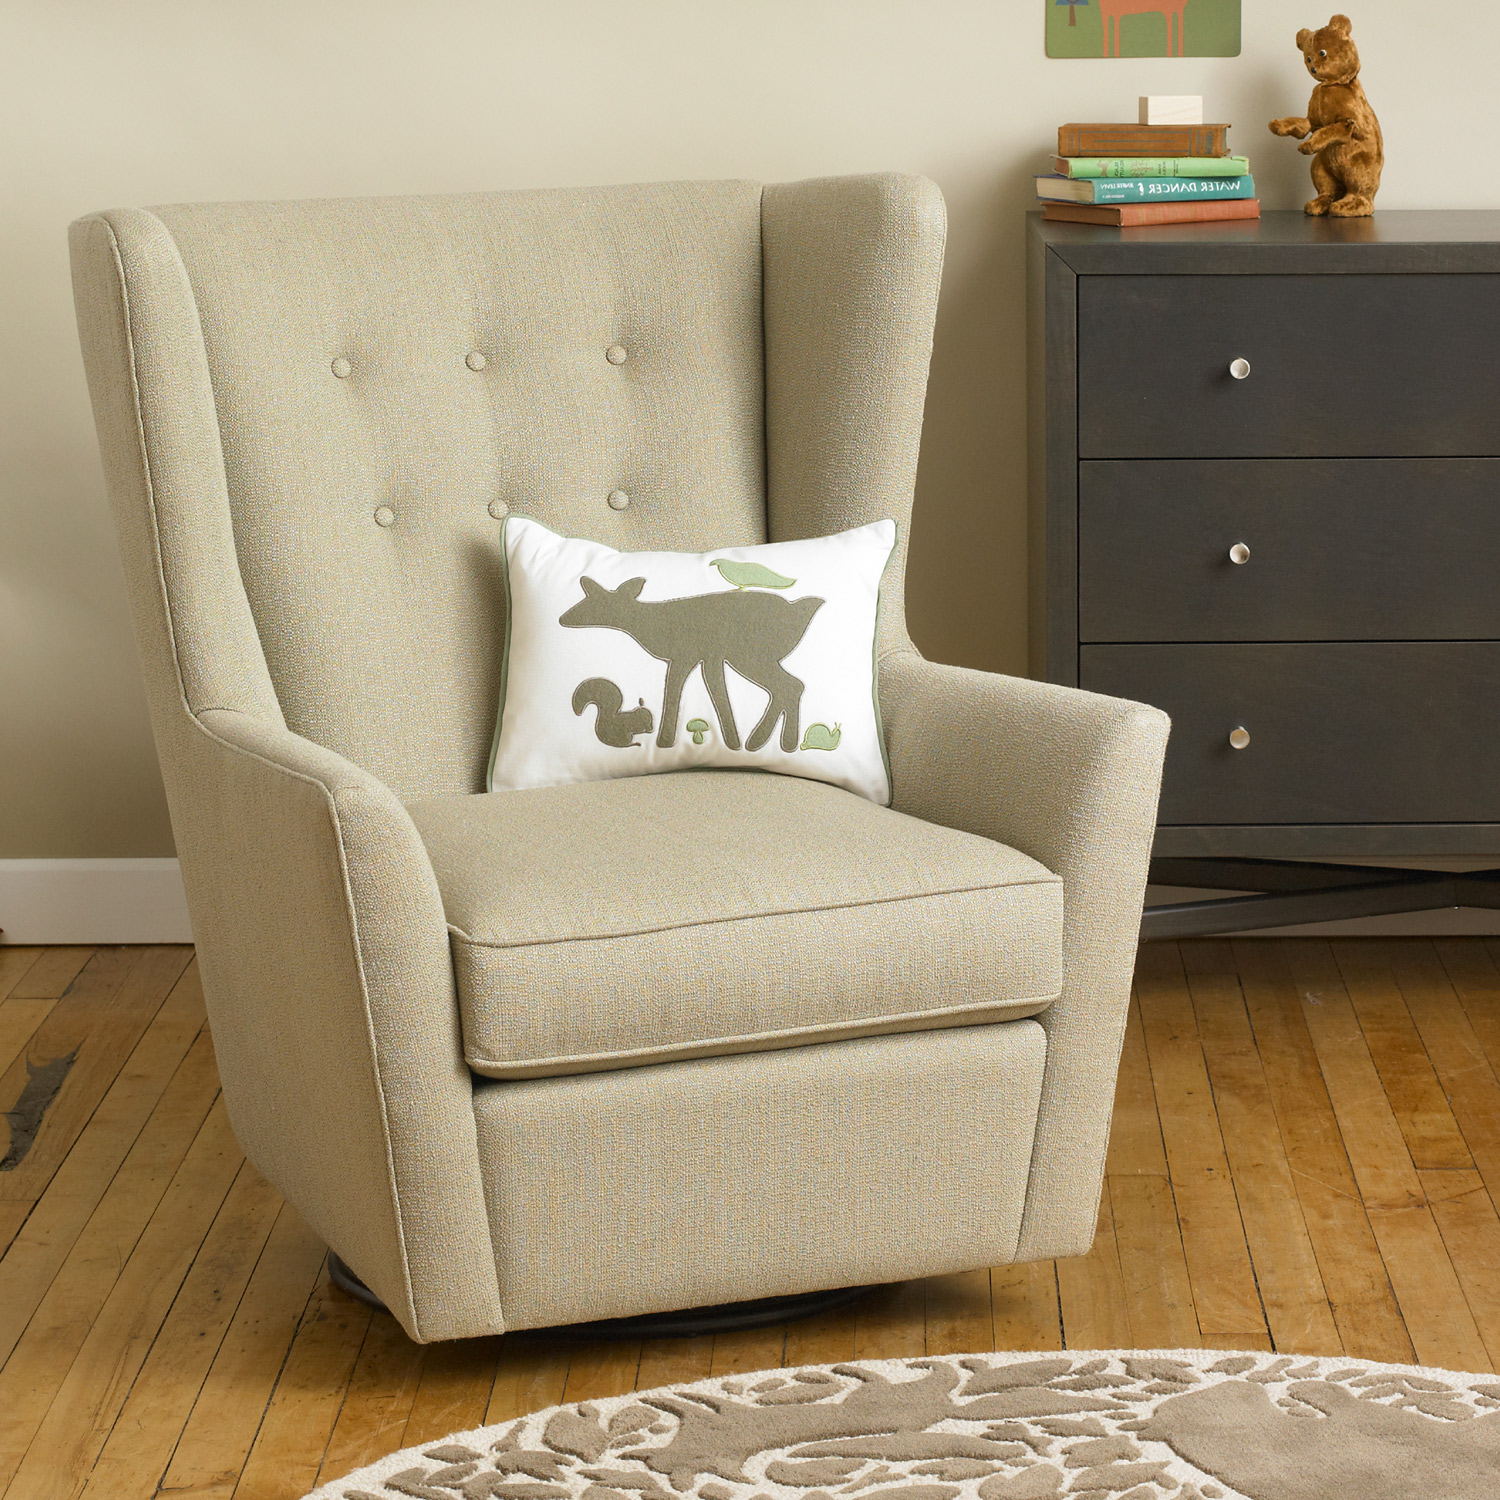 Elegant fabric upholstered glider rocker with armchairs and wooden laminate floor for living room